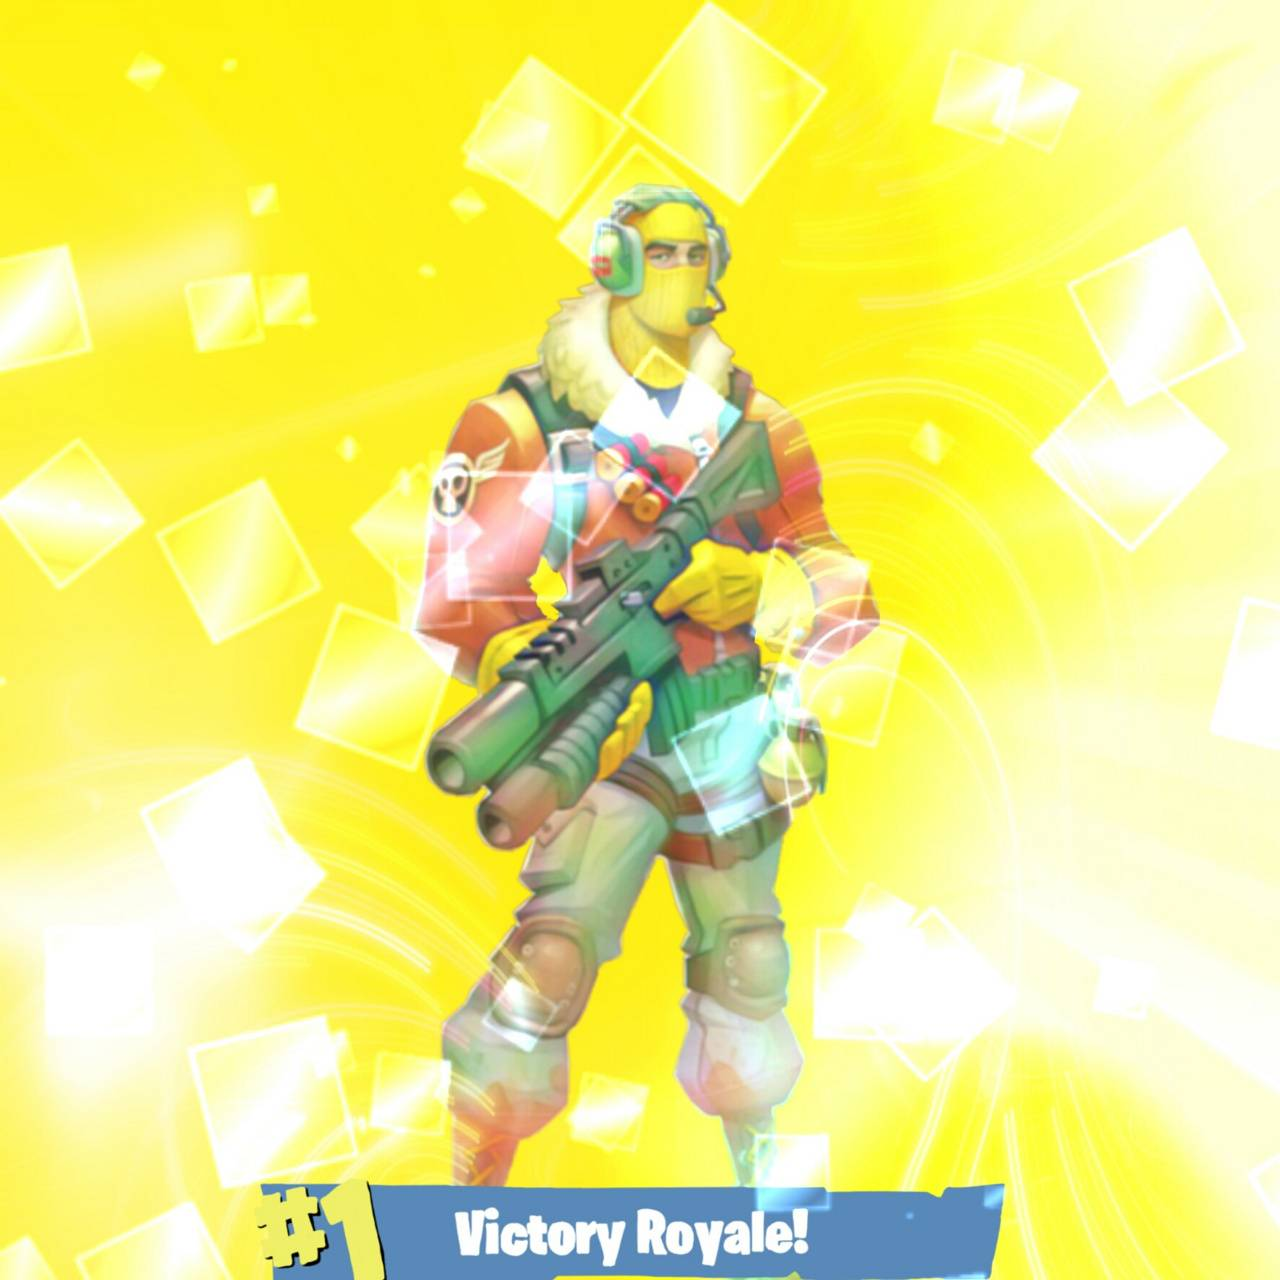 Victory Royale Wallpaper By Tkingwallpapers 96 Free On Zedge